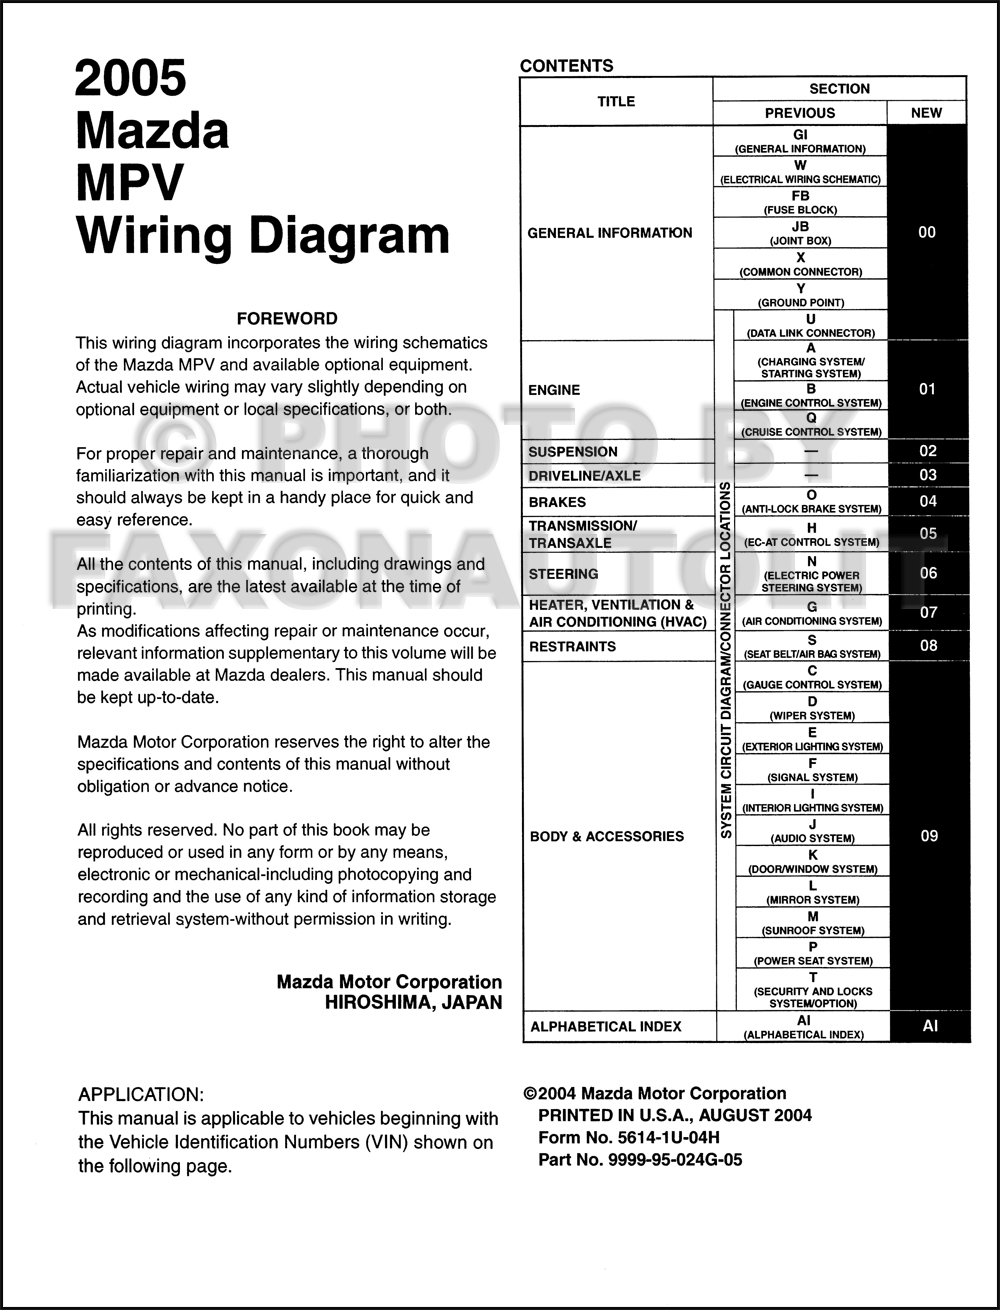 2003 Mazda B3000 Wiring Diagram